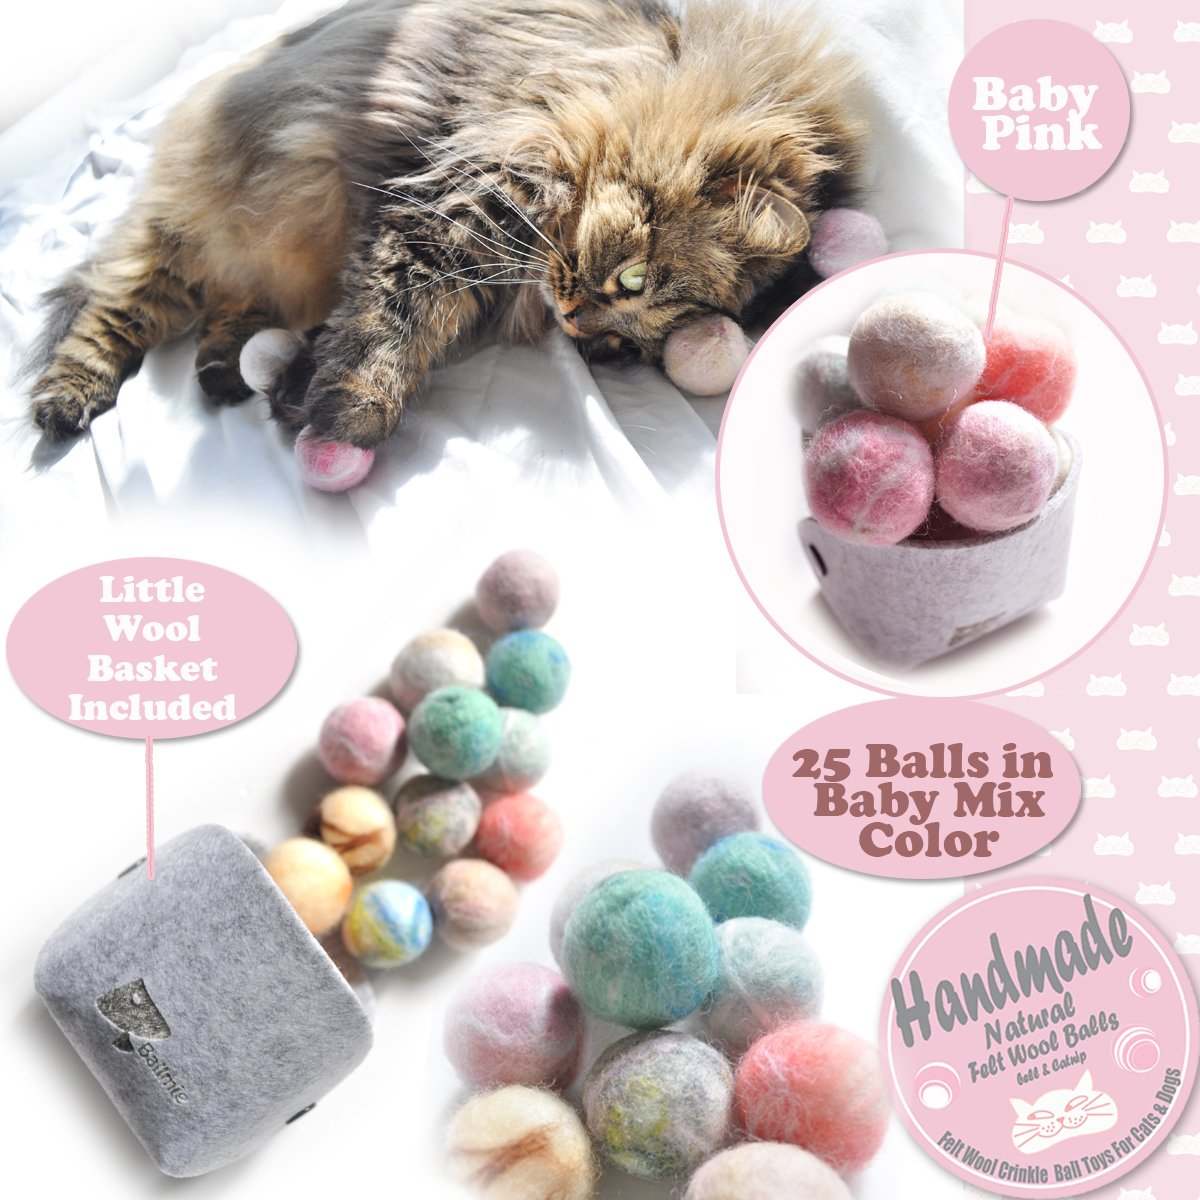 Ballmie Felt Wool Cat Toys Ball with catnip and bell, Natural Handmade (Baby Mix (25 Units)) by Ballmie (Image #3)